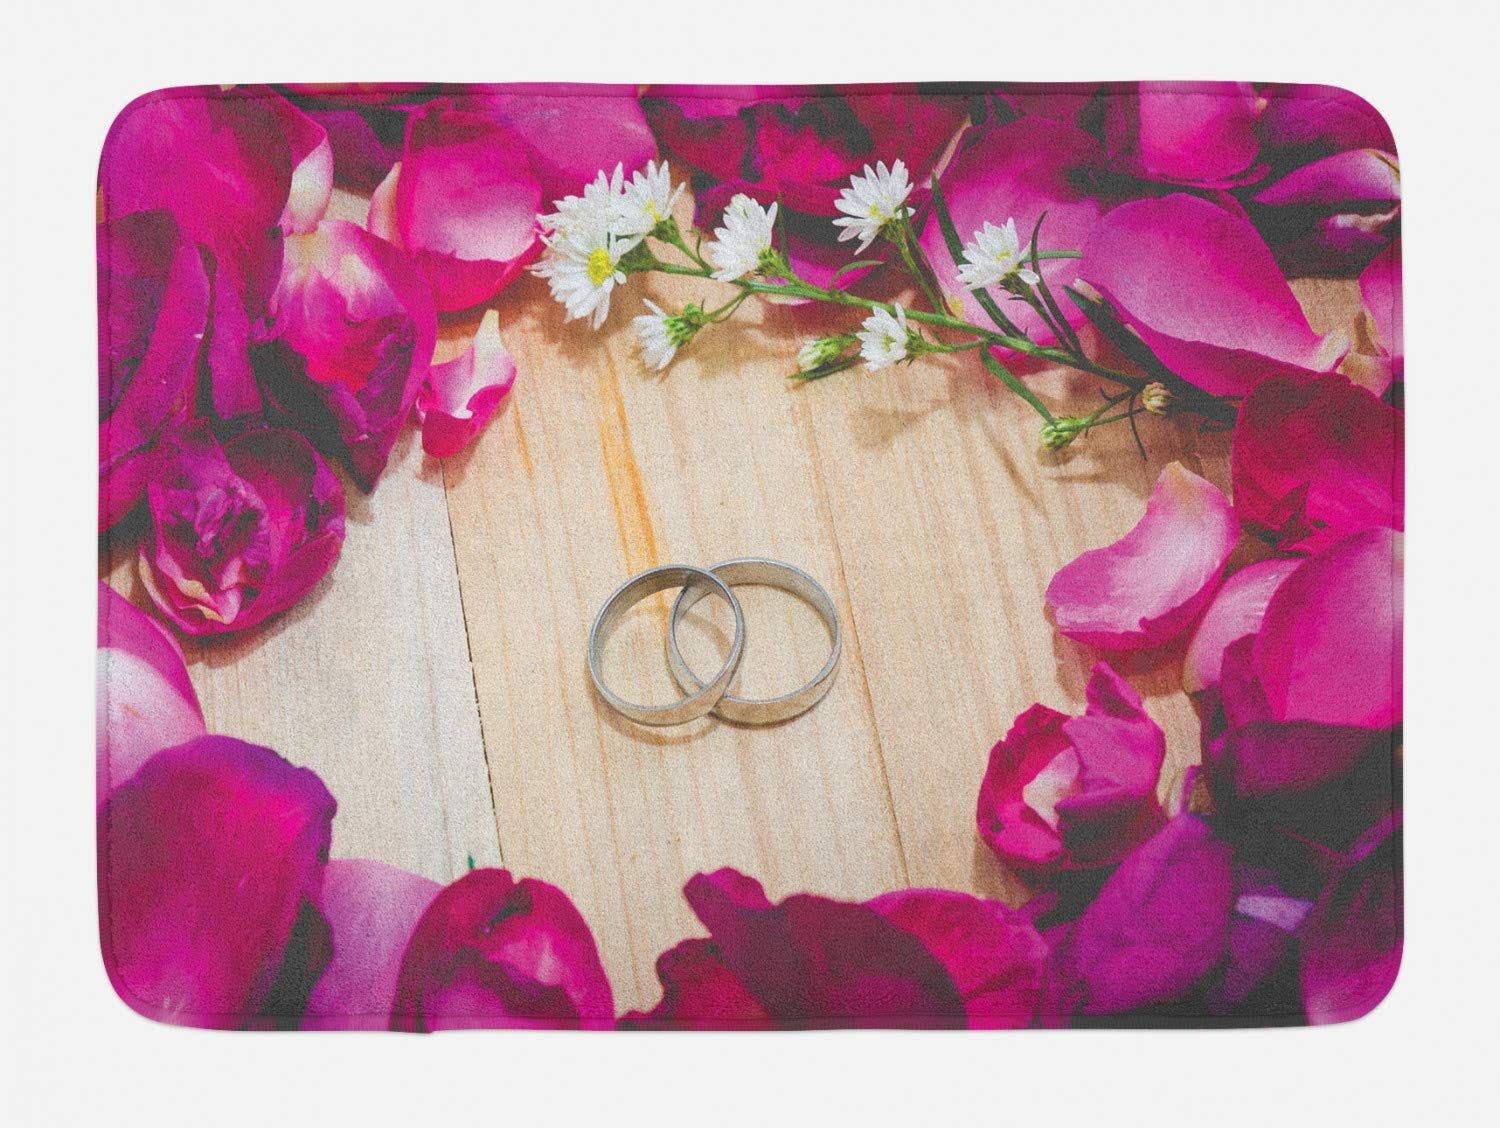 Lohebhuic Two Rings on a Wooden Board Surrounded by Pink Rose Petals Romantic Wedding Plush Bathroom Decor Mat with Non Slip Backing,46.8'' W by 70.98'' L